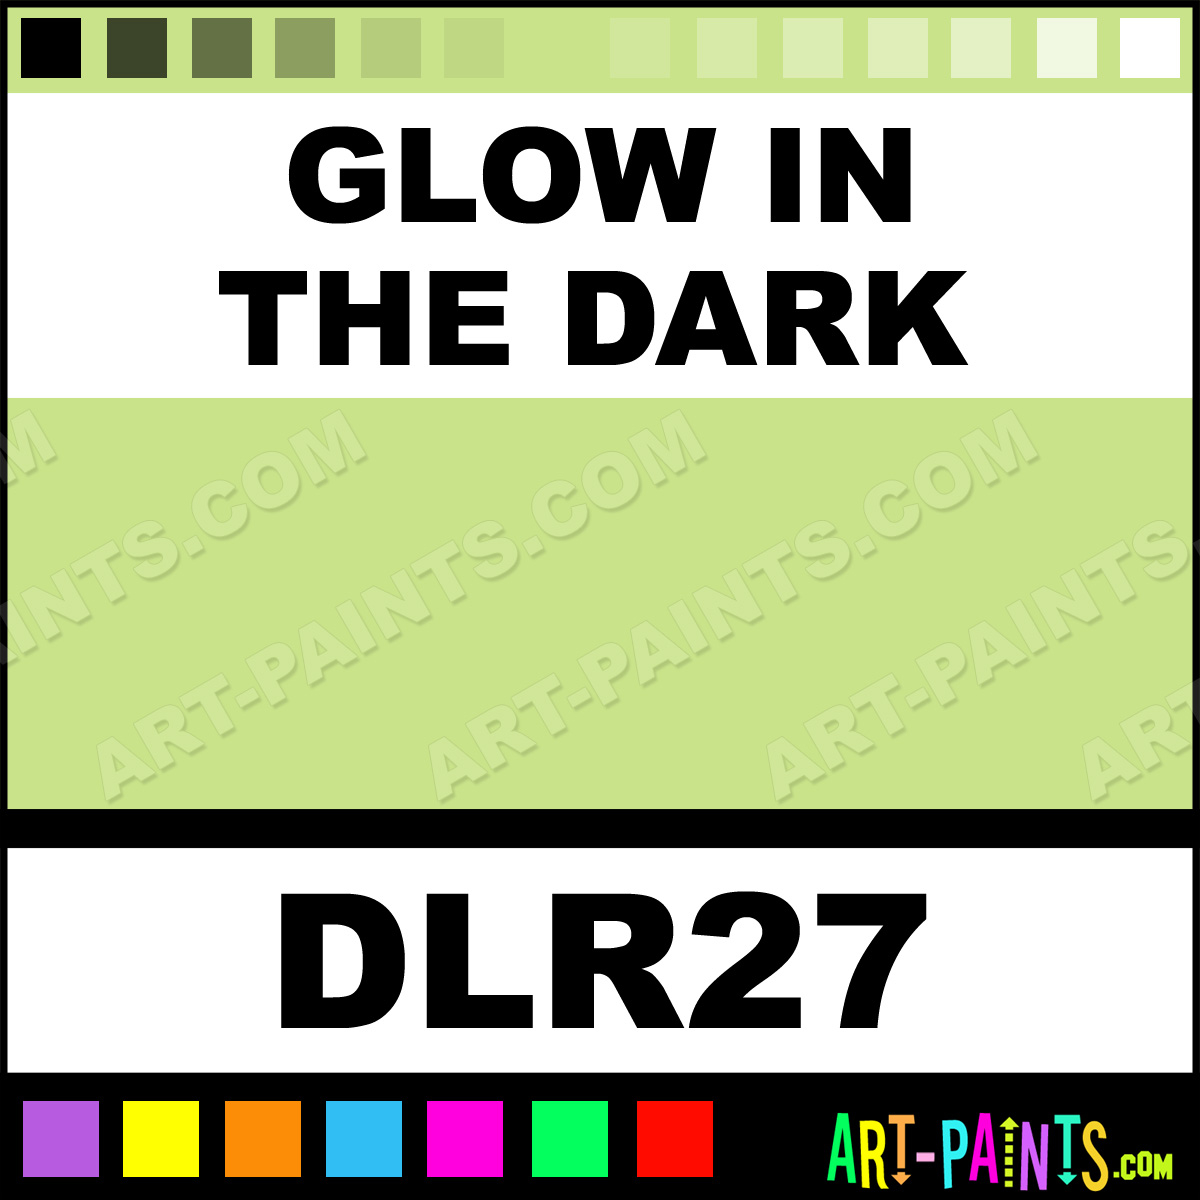 window paints inks and stains dlr27 glow in the dark paint glow. Black Bedroom Furniture Sets. Home Design Ideas